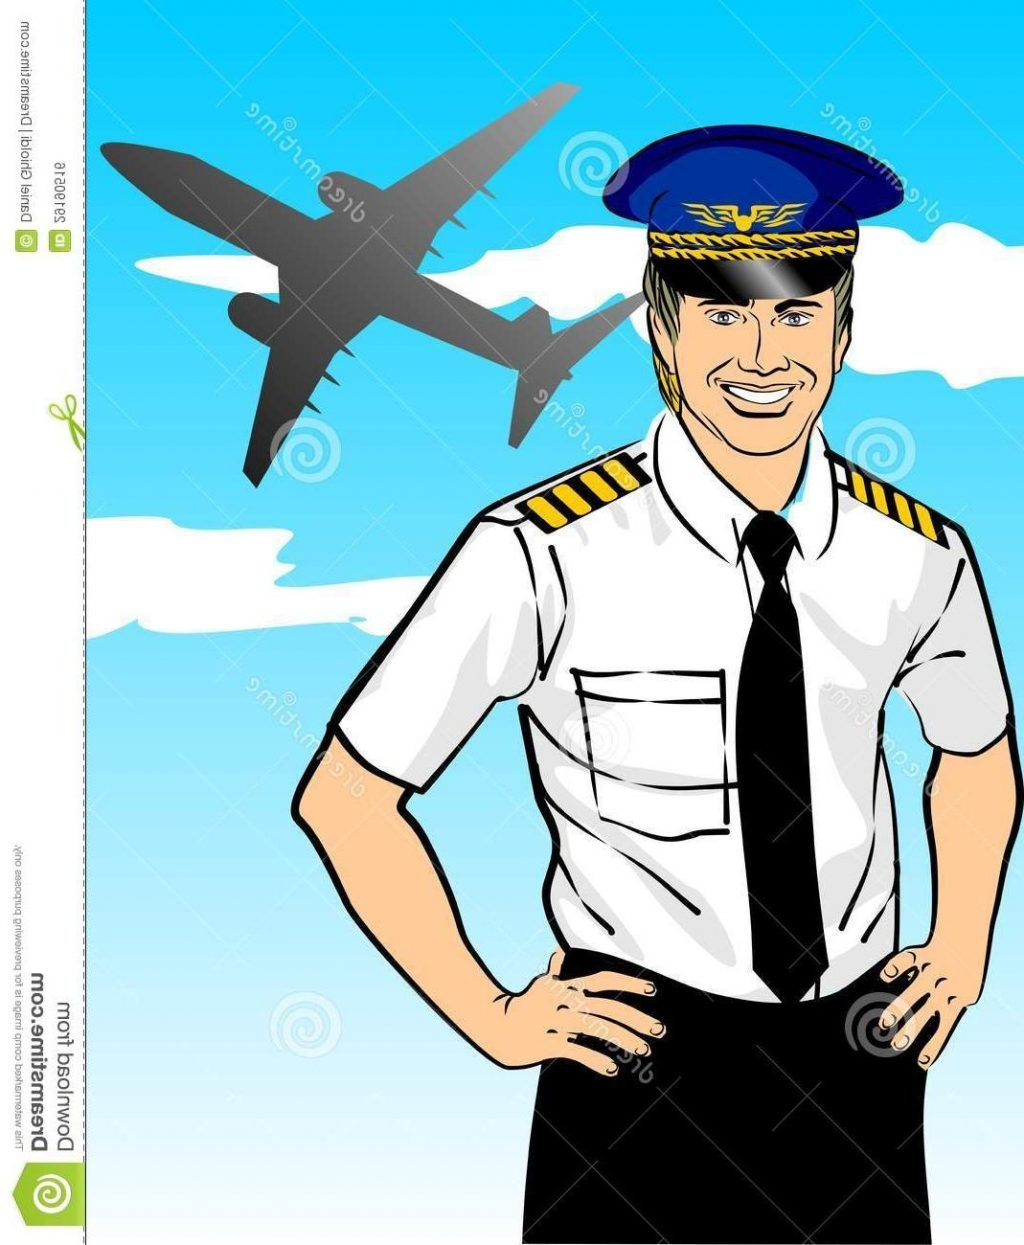 Pilot clipart. Fresh design digital collection